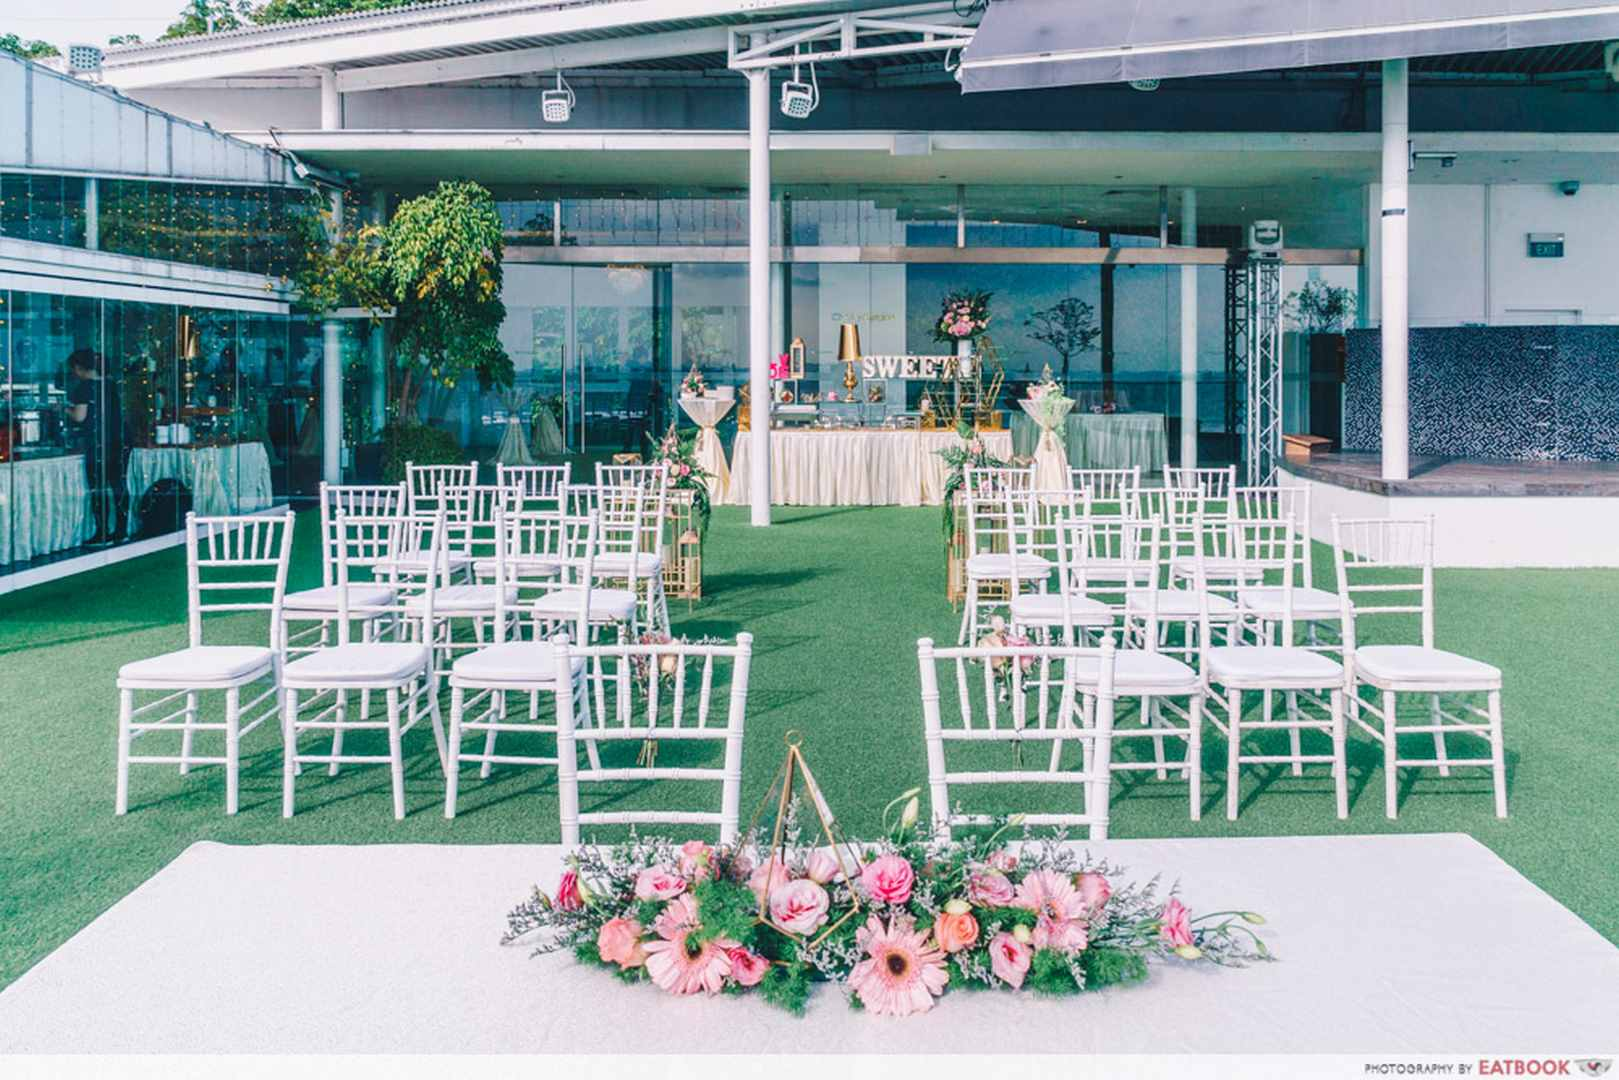 Rasel Catering outdoor wedding